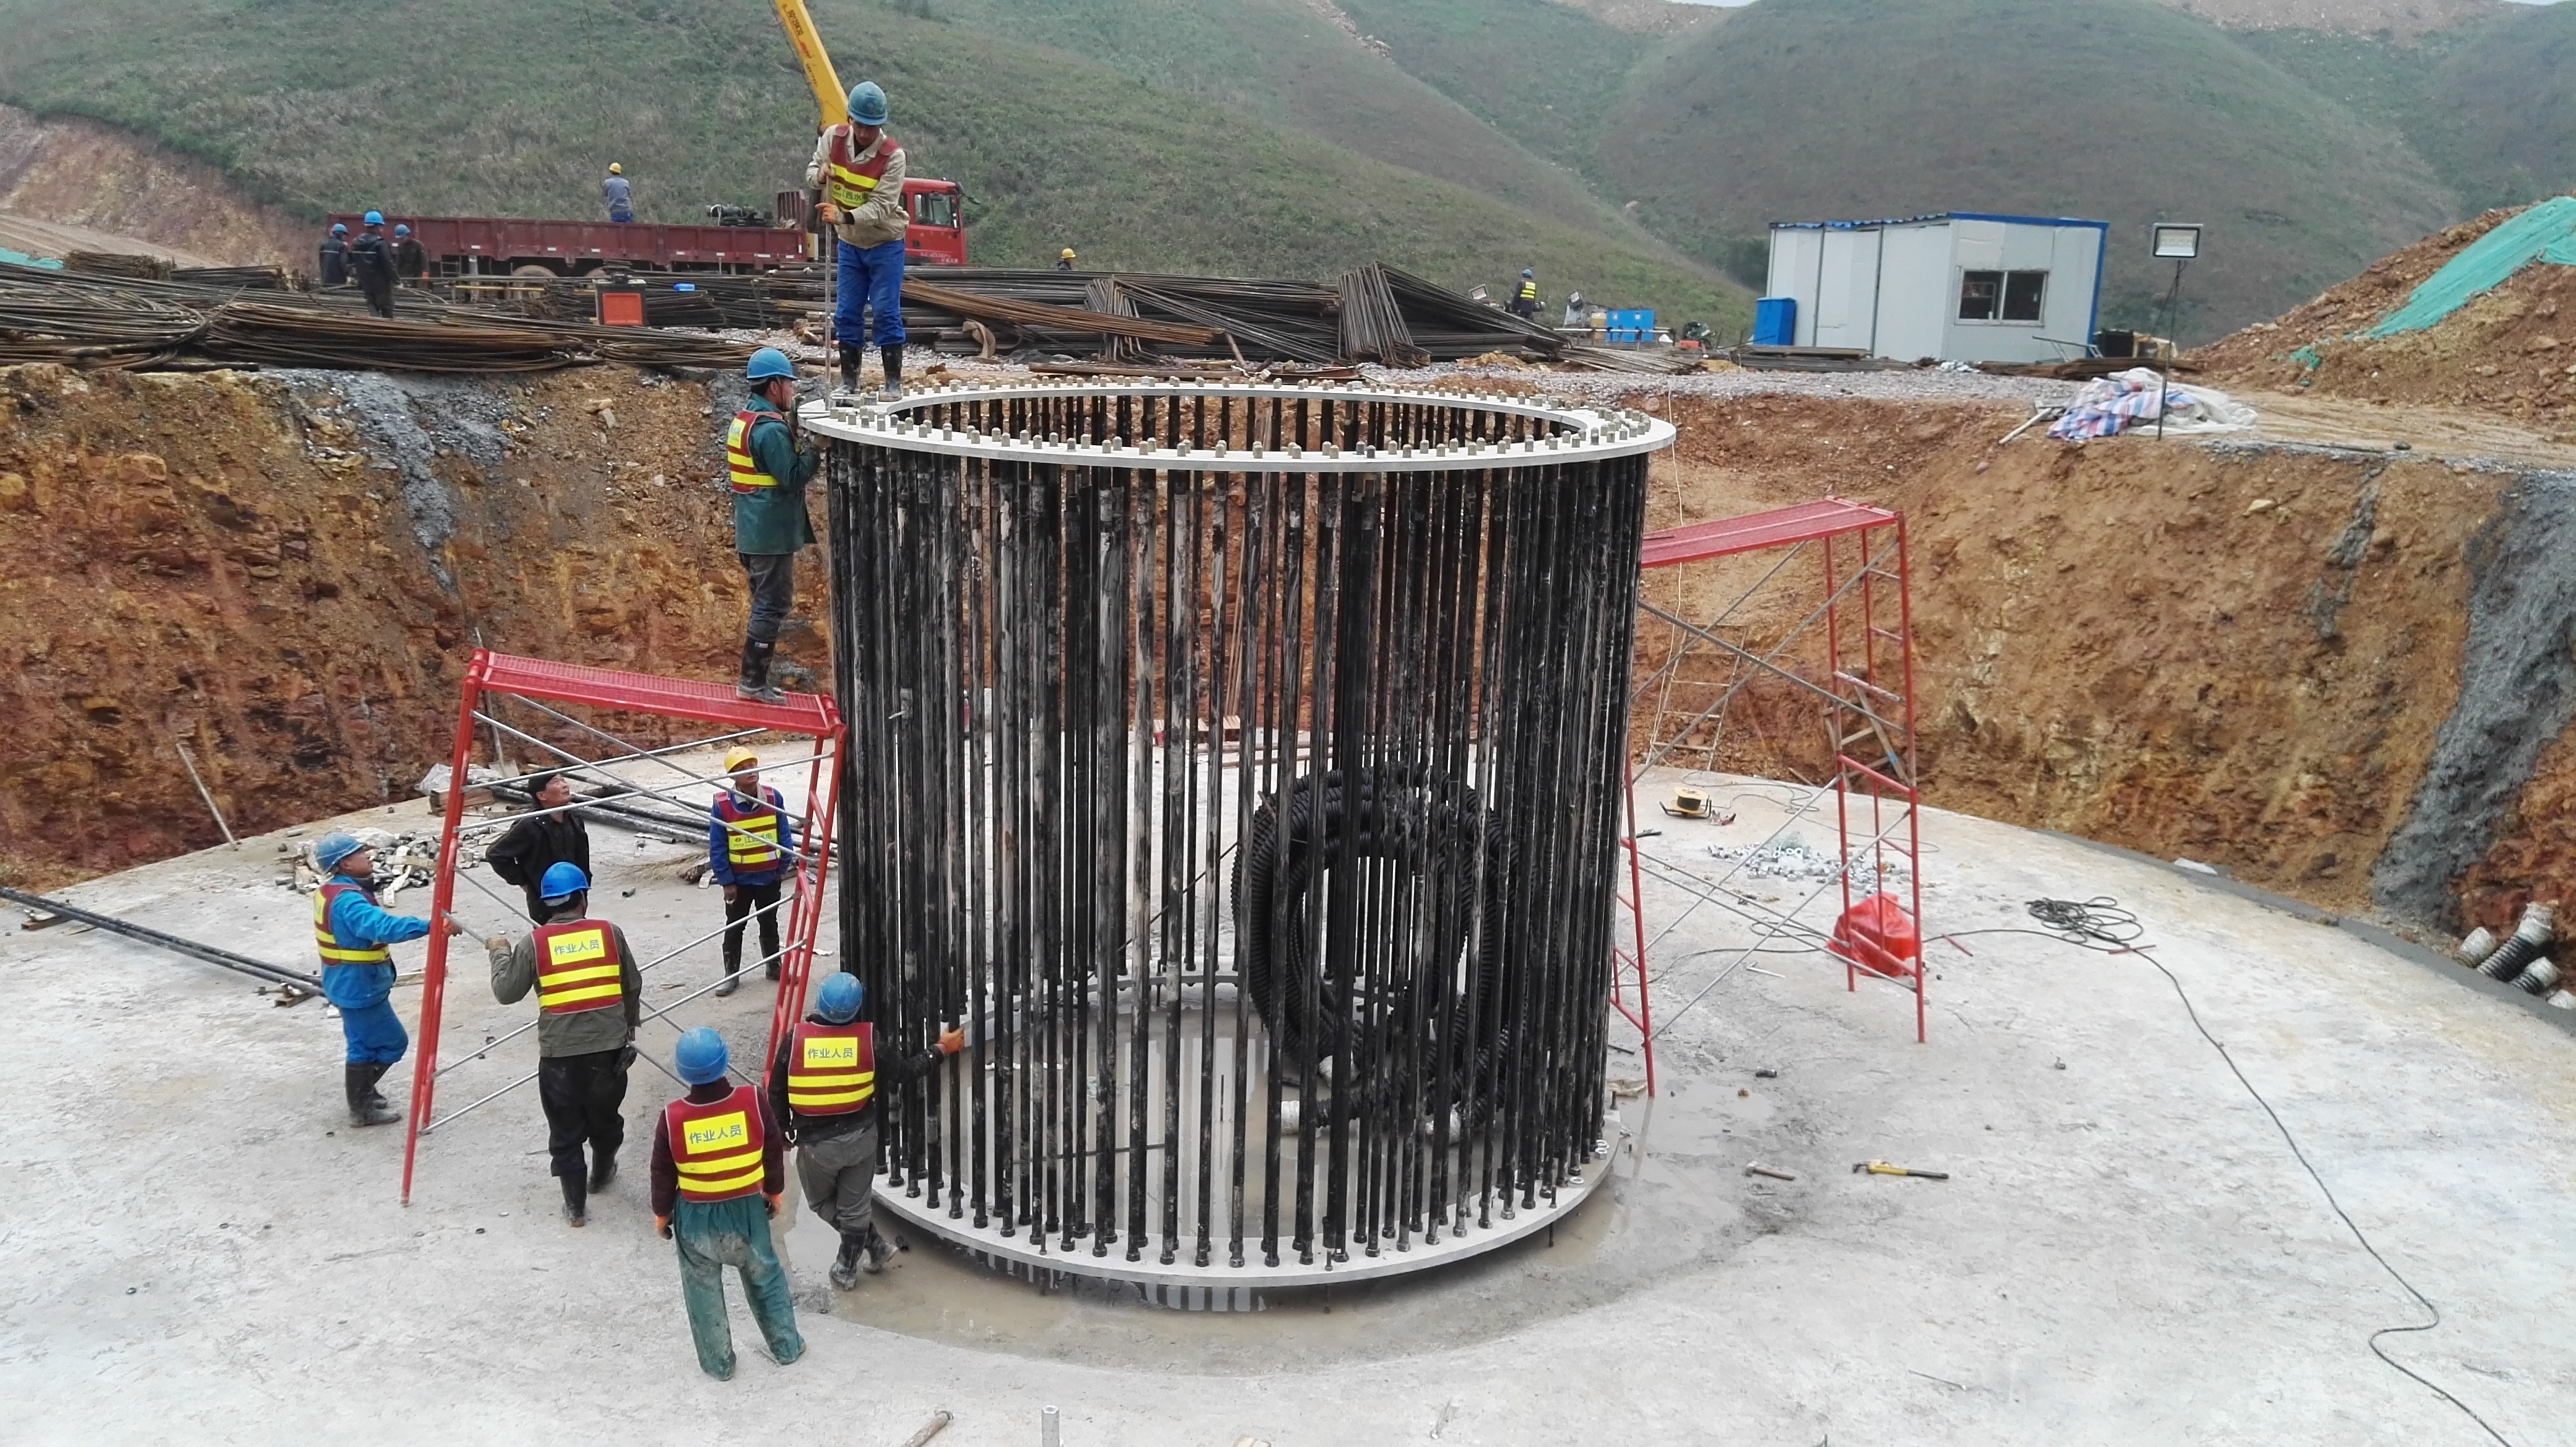 During Pedemic, JINHU Wind Farm Project was delayed but constructions resumed soon